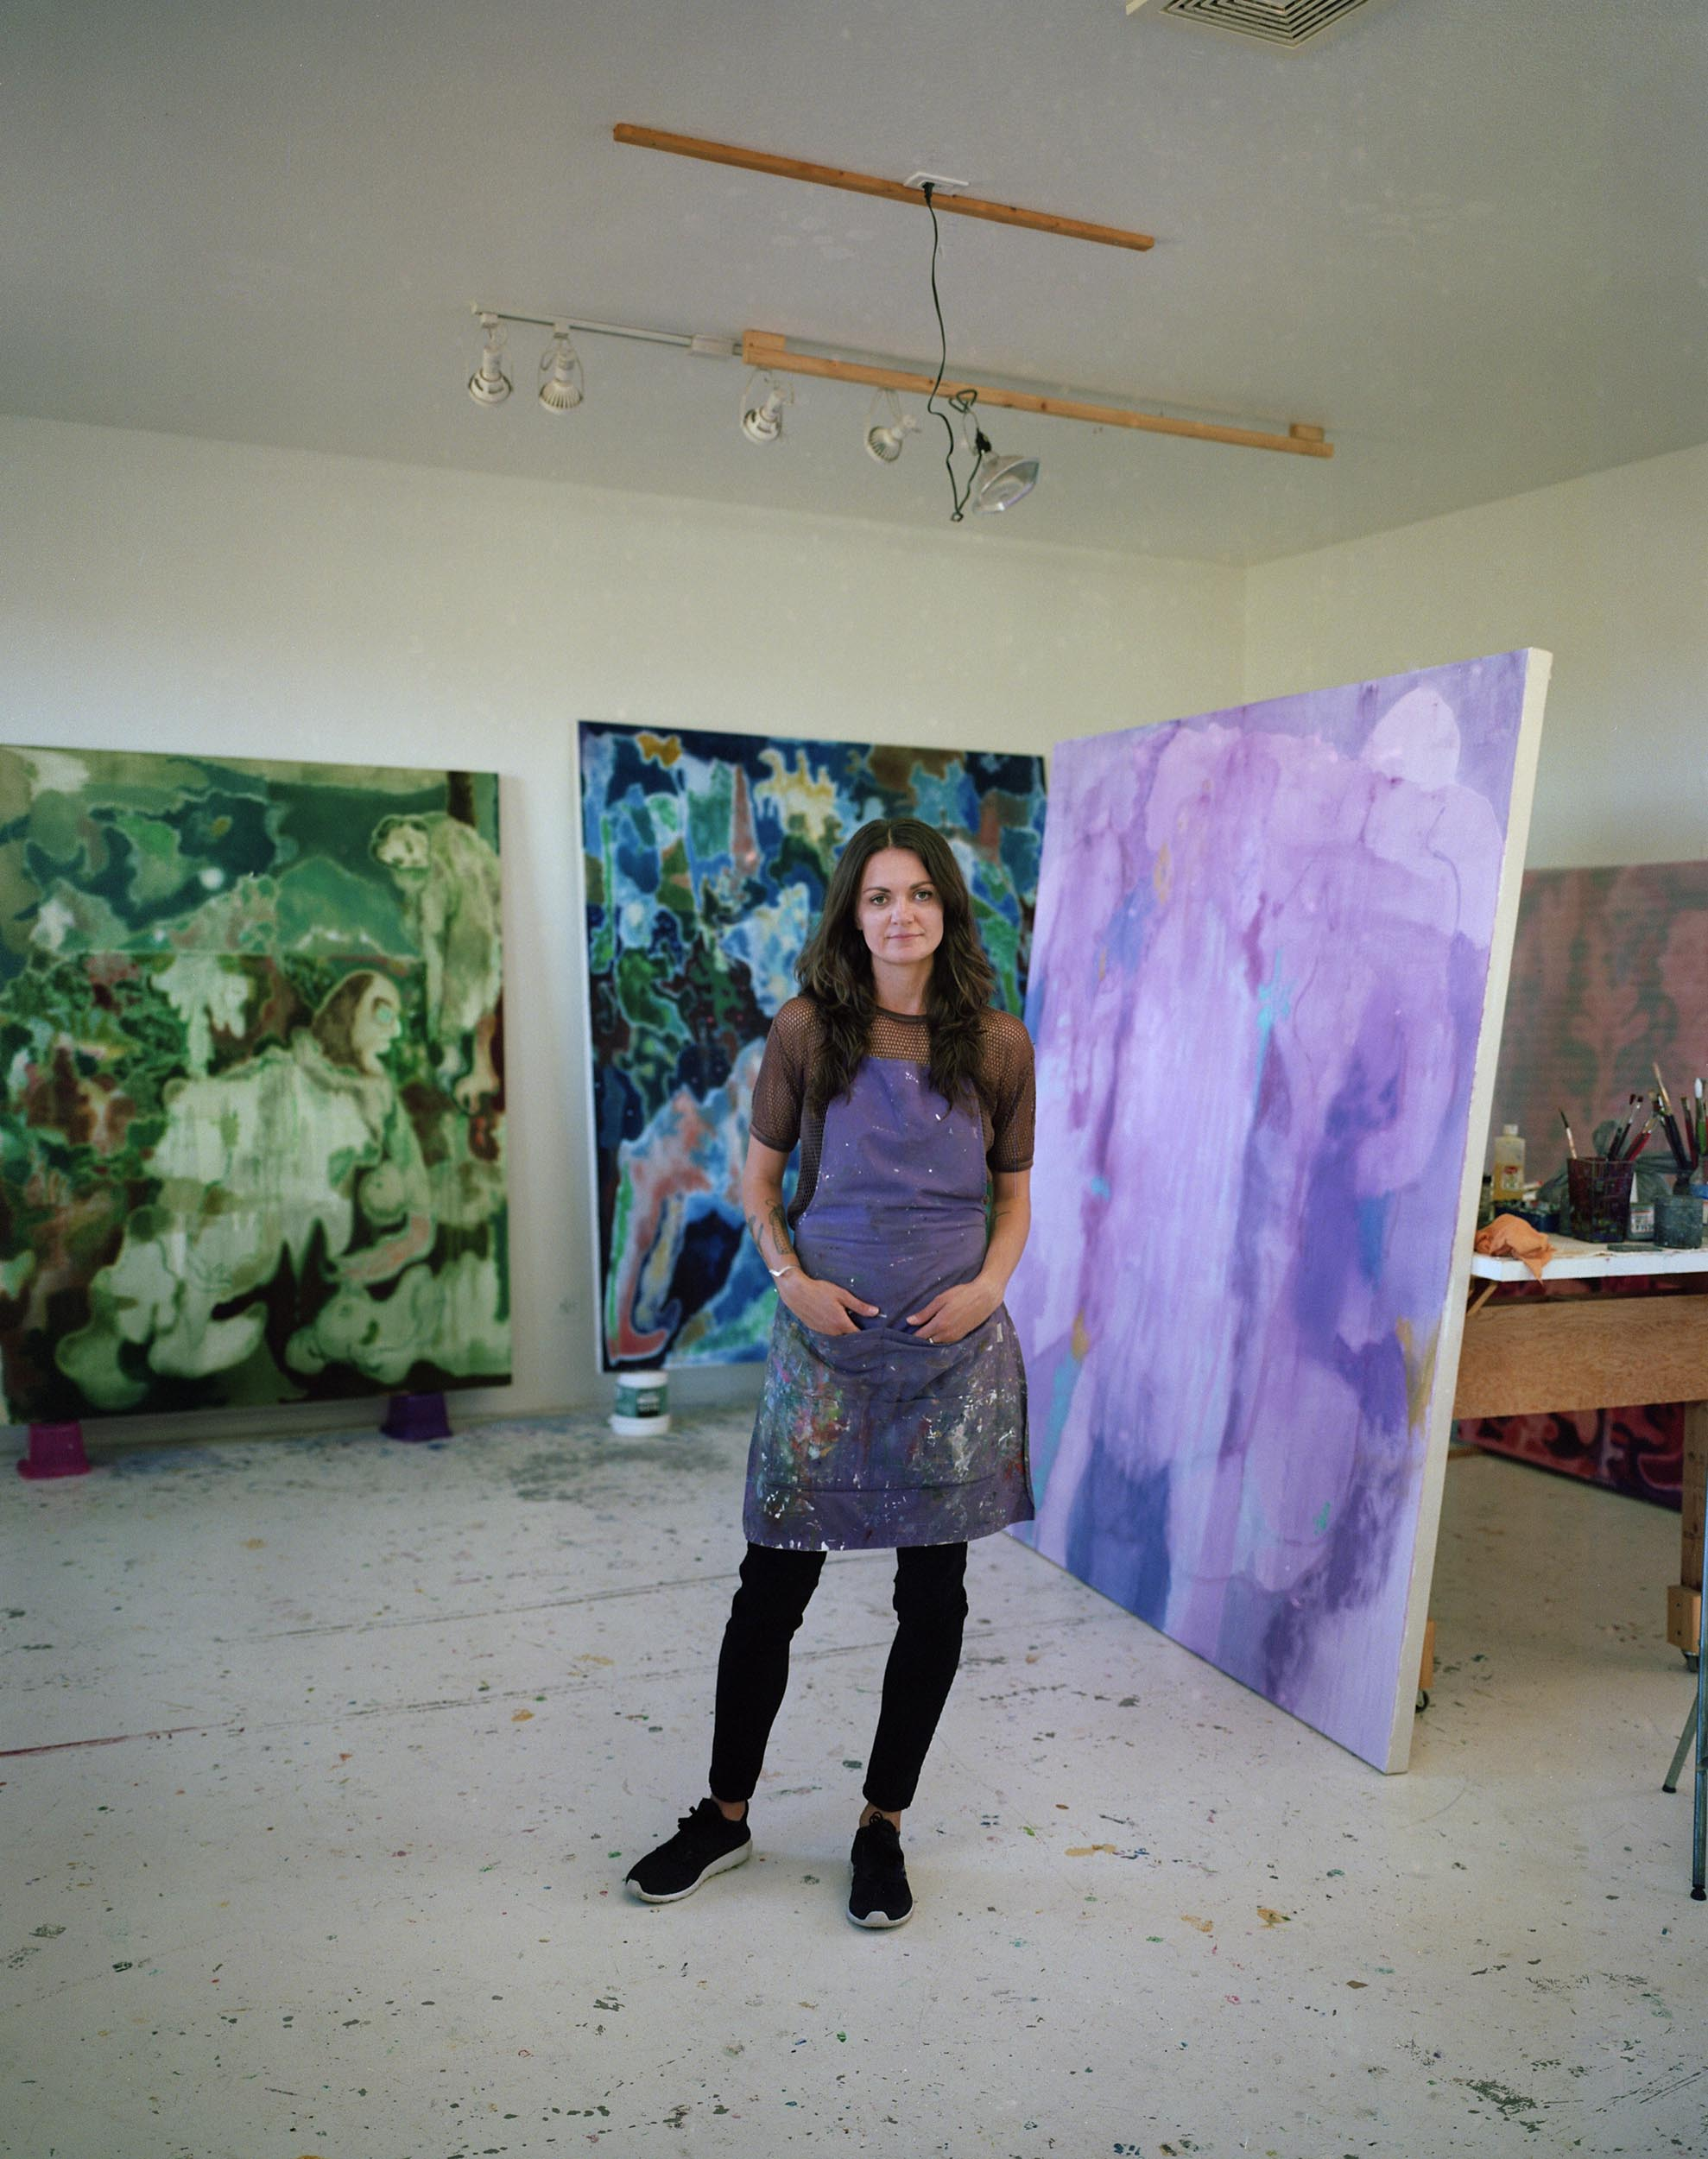 Ruznic in her studio, Photo by Theo Schear